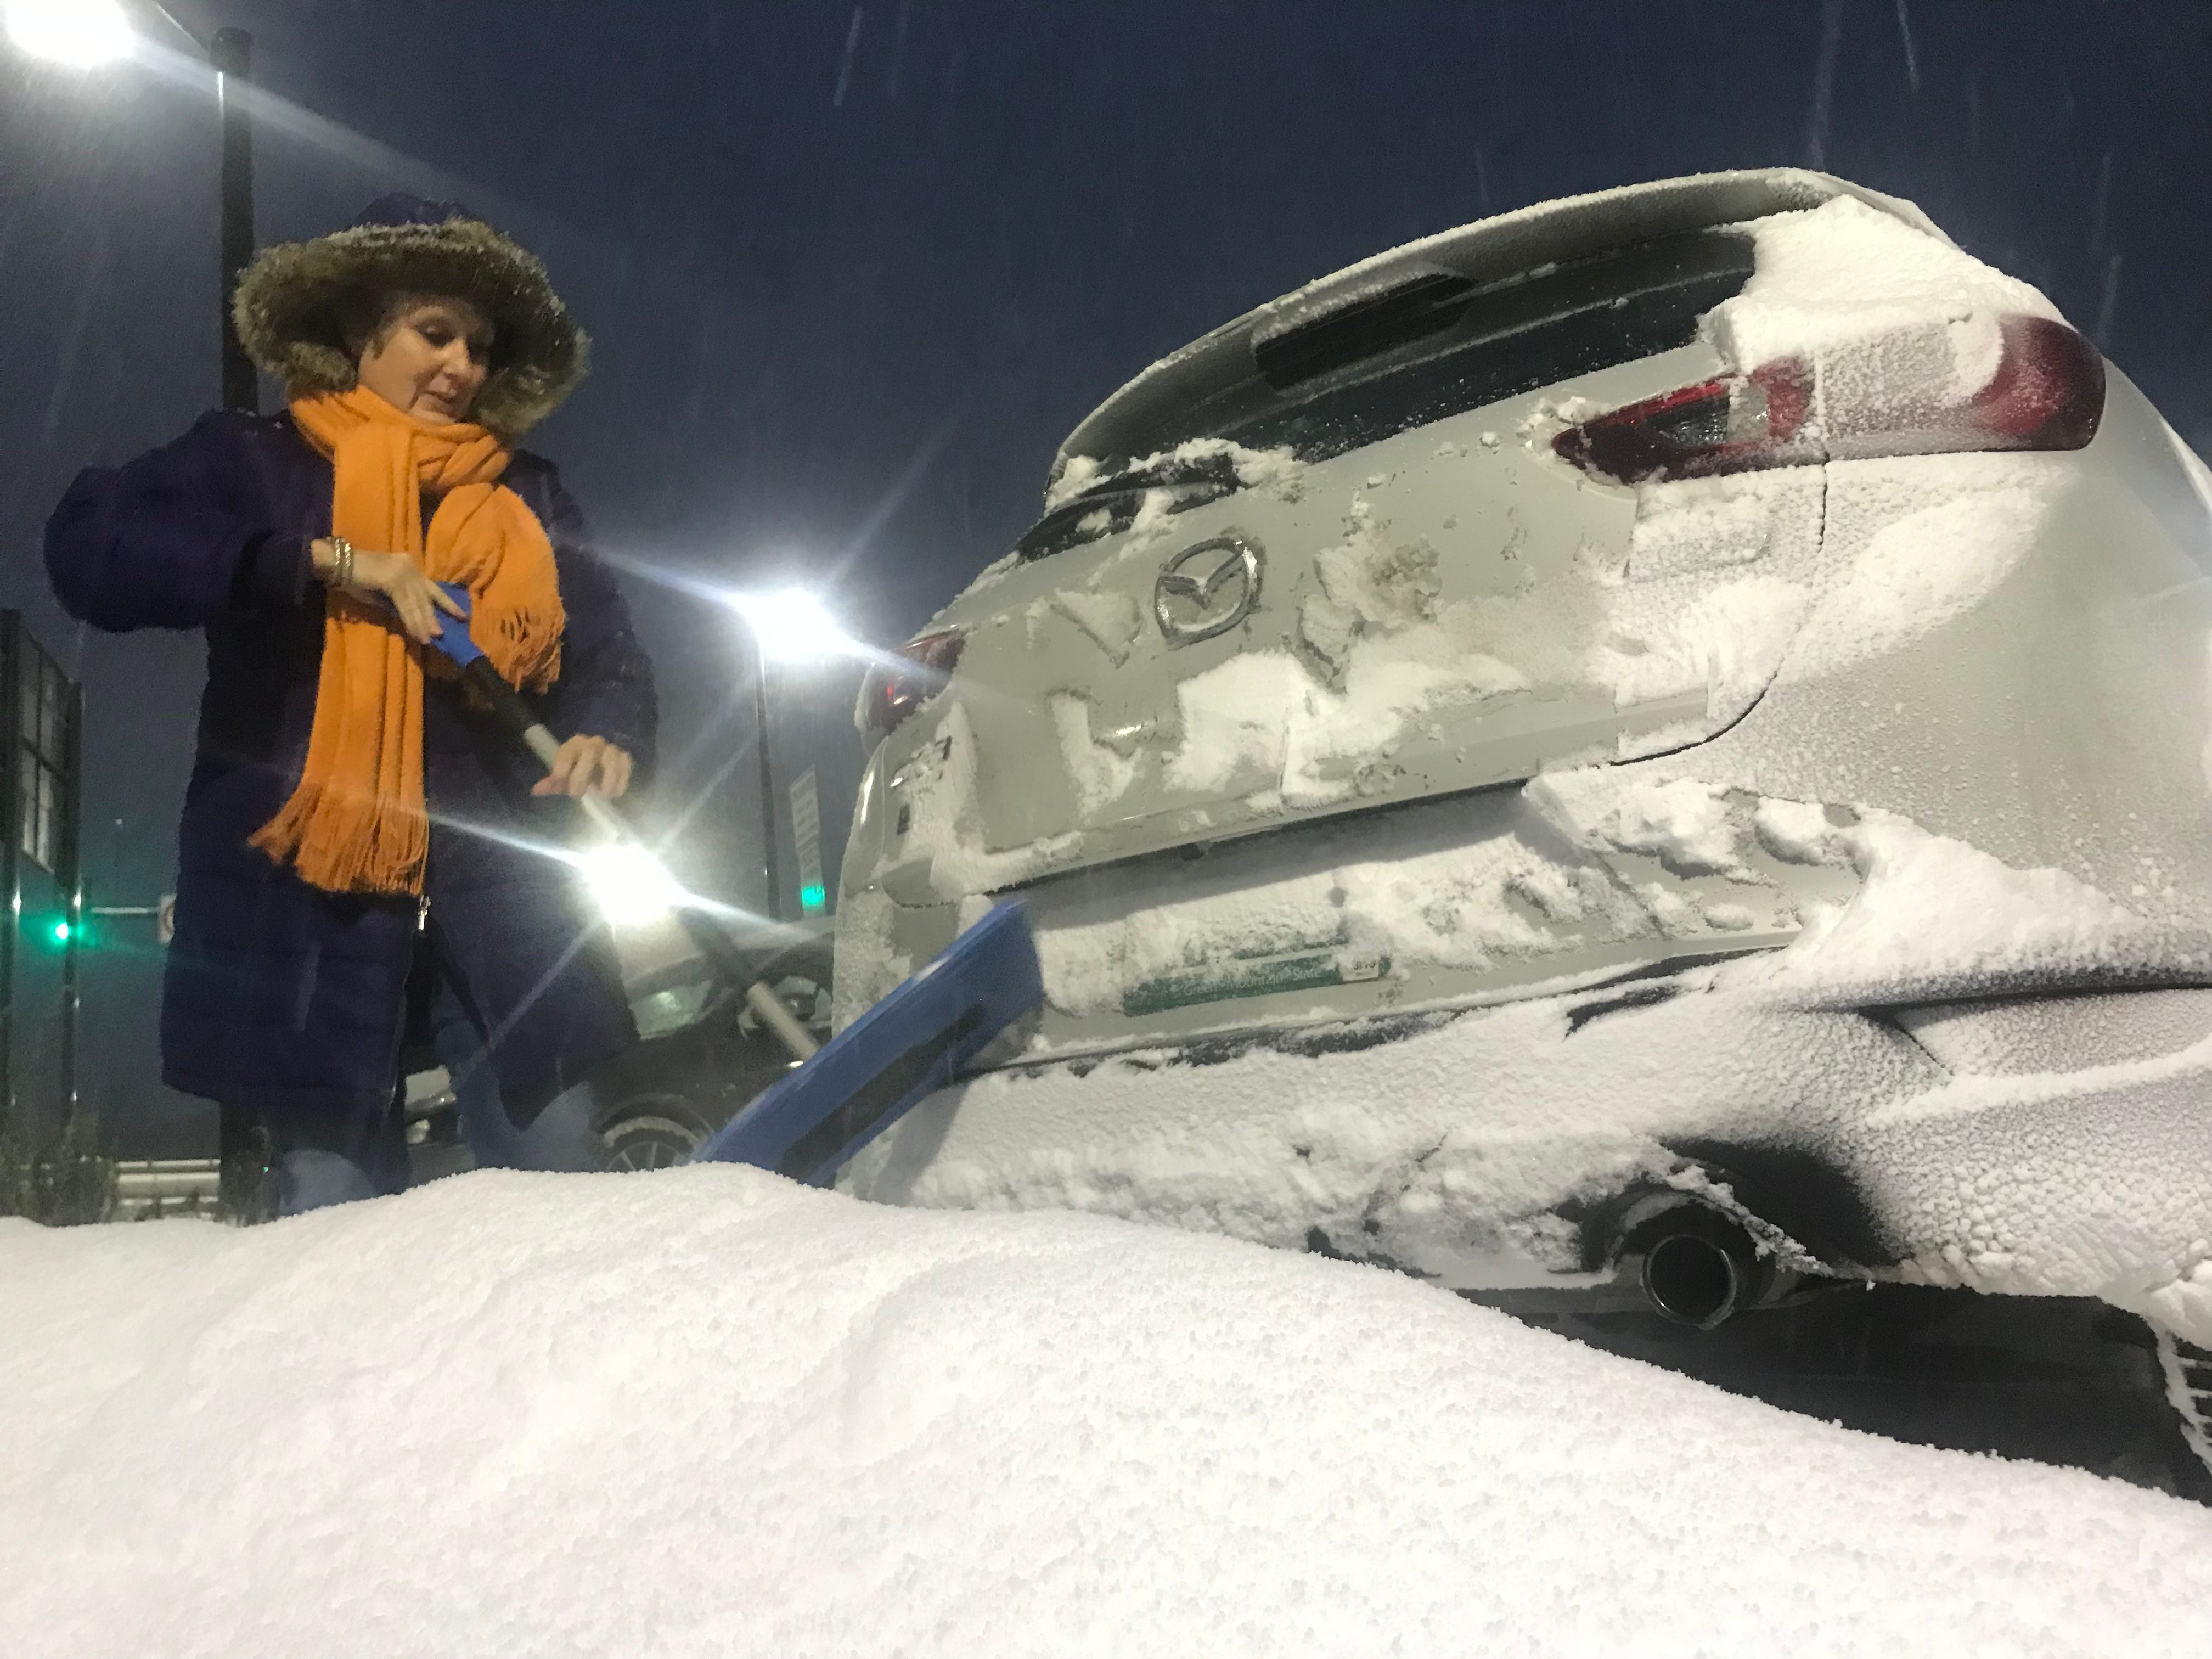 Gwen Genno of Essex, Vermont, takes a moment to clear snow from her car at the Richmond Park and Ride, Nov. 16, 2018, as a winter storm settled into Vermont, promising upwards of a foot of snow in some areas.